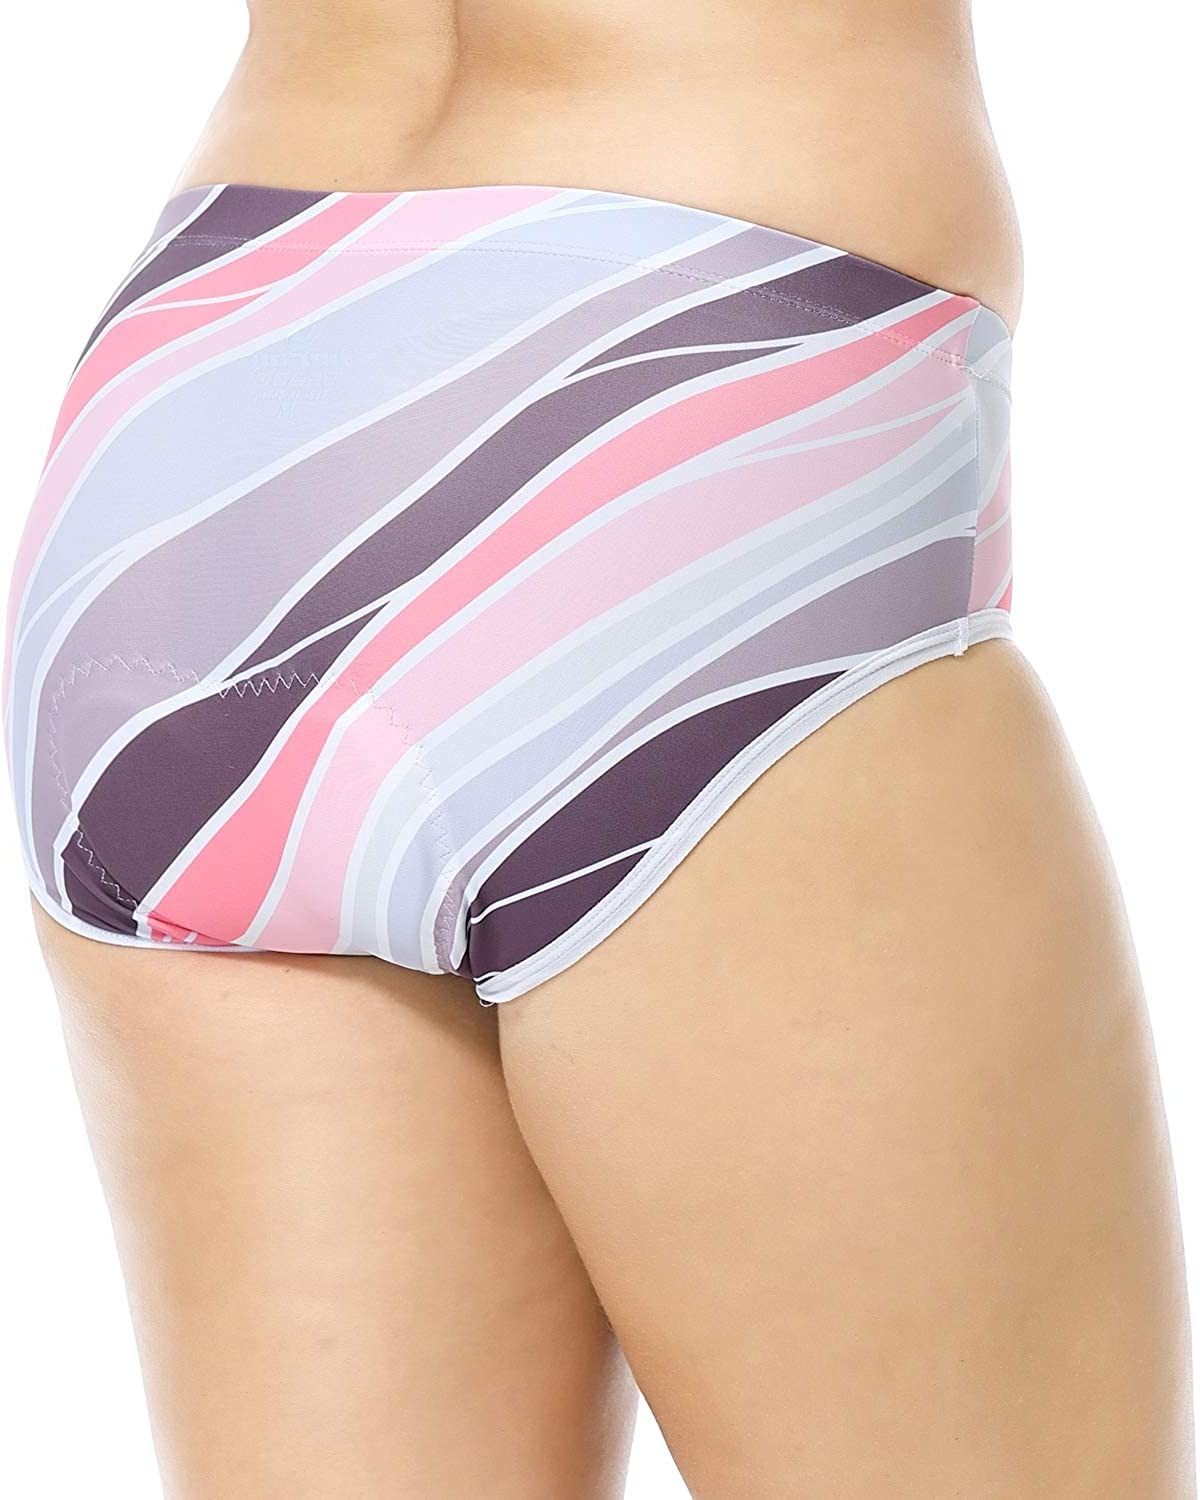 beroy Women Quick Dry Cycling Underwear with 3D Padded,Gel Bike Underwear and Bike Shorts